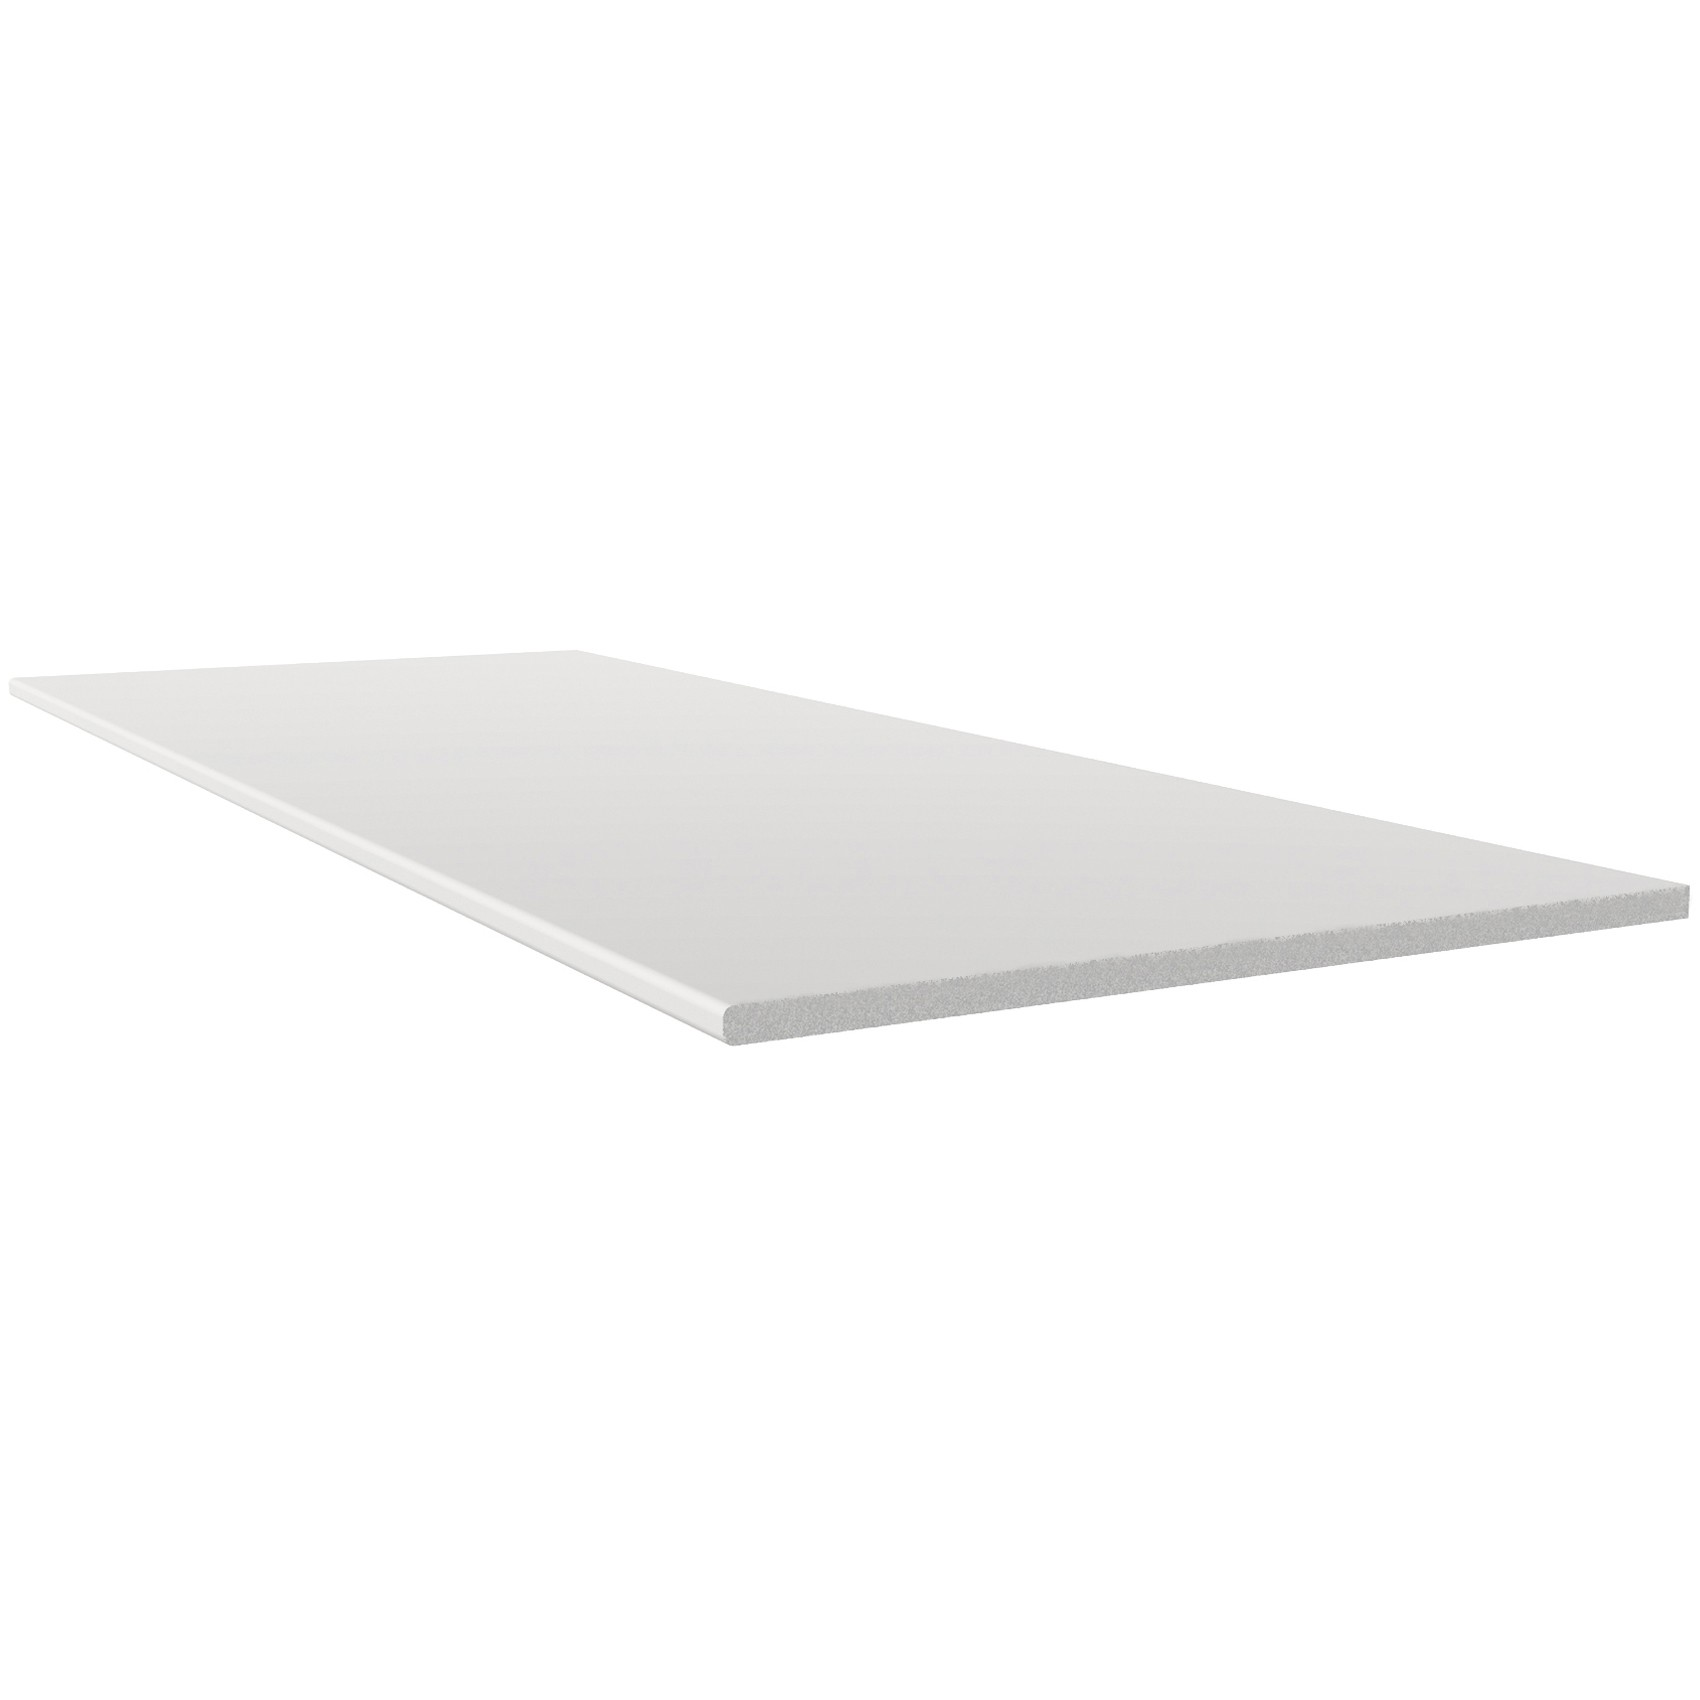 Freefoam 10mm Solid Soffit Board - White, 405mm, 5 metre